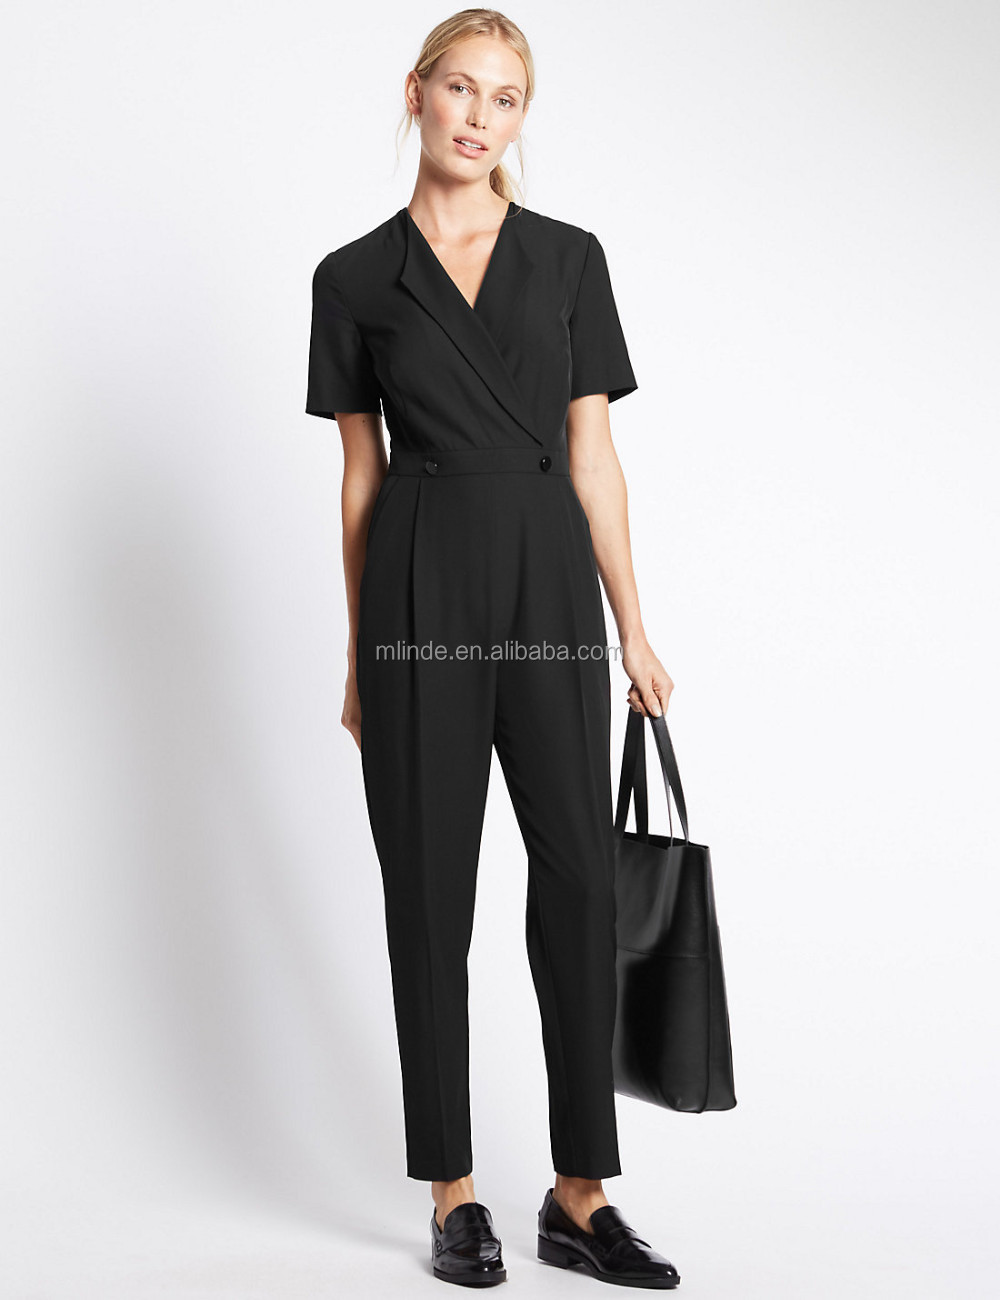 Cheap Wholesale Adult Women Formal Flip Back Short Sleeve Jumpsuits Deep V  neck Sexy Ladies Jumpsuits Office Formal Clothing 2c36a79a5b5a